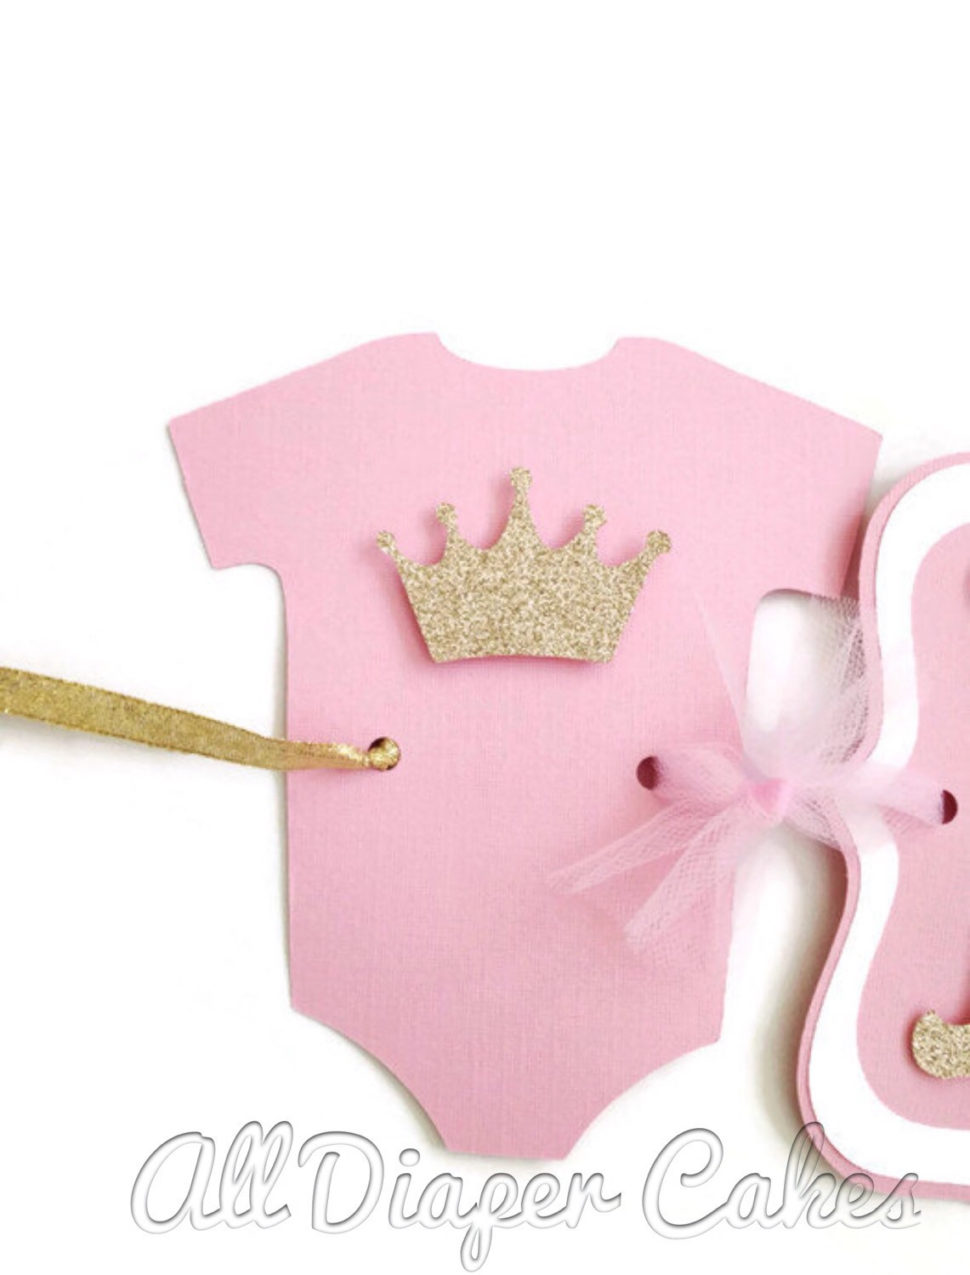 Medium Size of Baby Shower:89+ Indulging Baby Shower Banner Picture Inspirations Baby Shower Banner Princess Baby Shower Banner Pink And Gold Banner